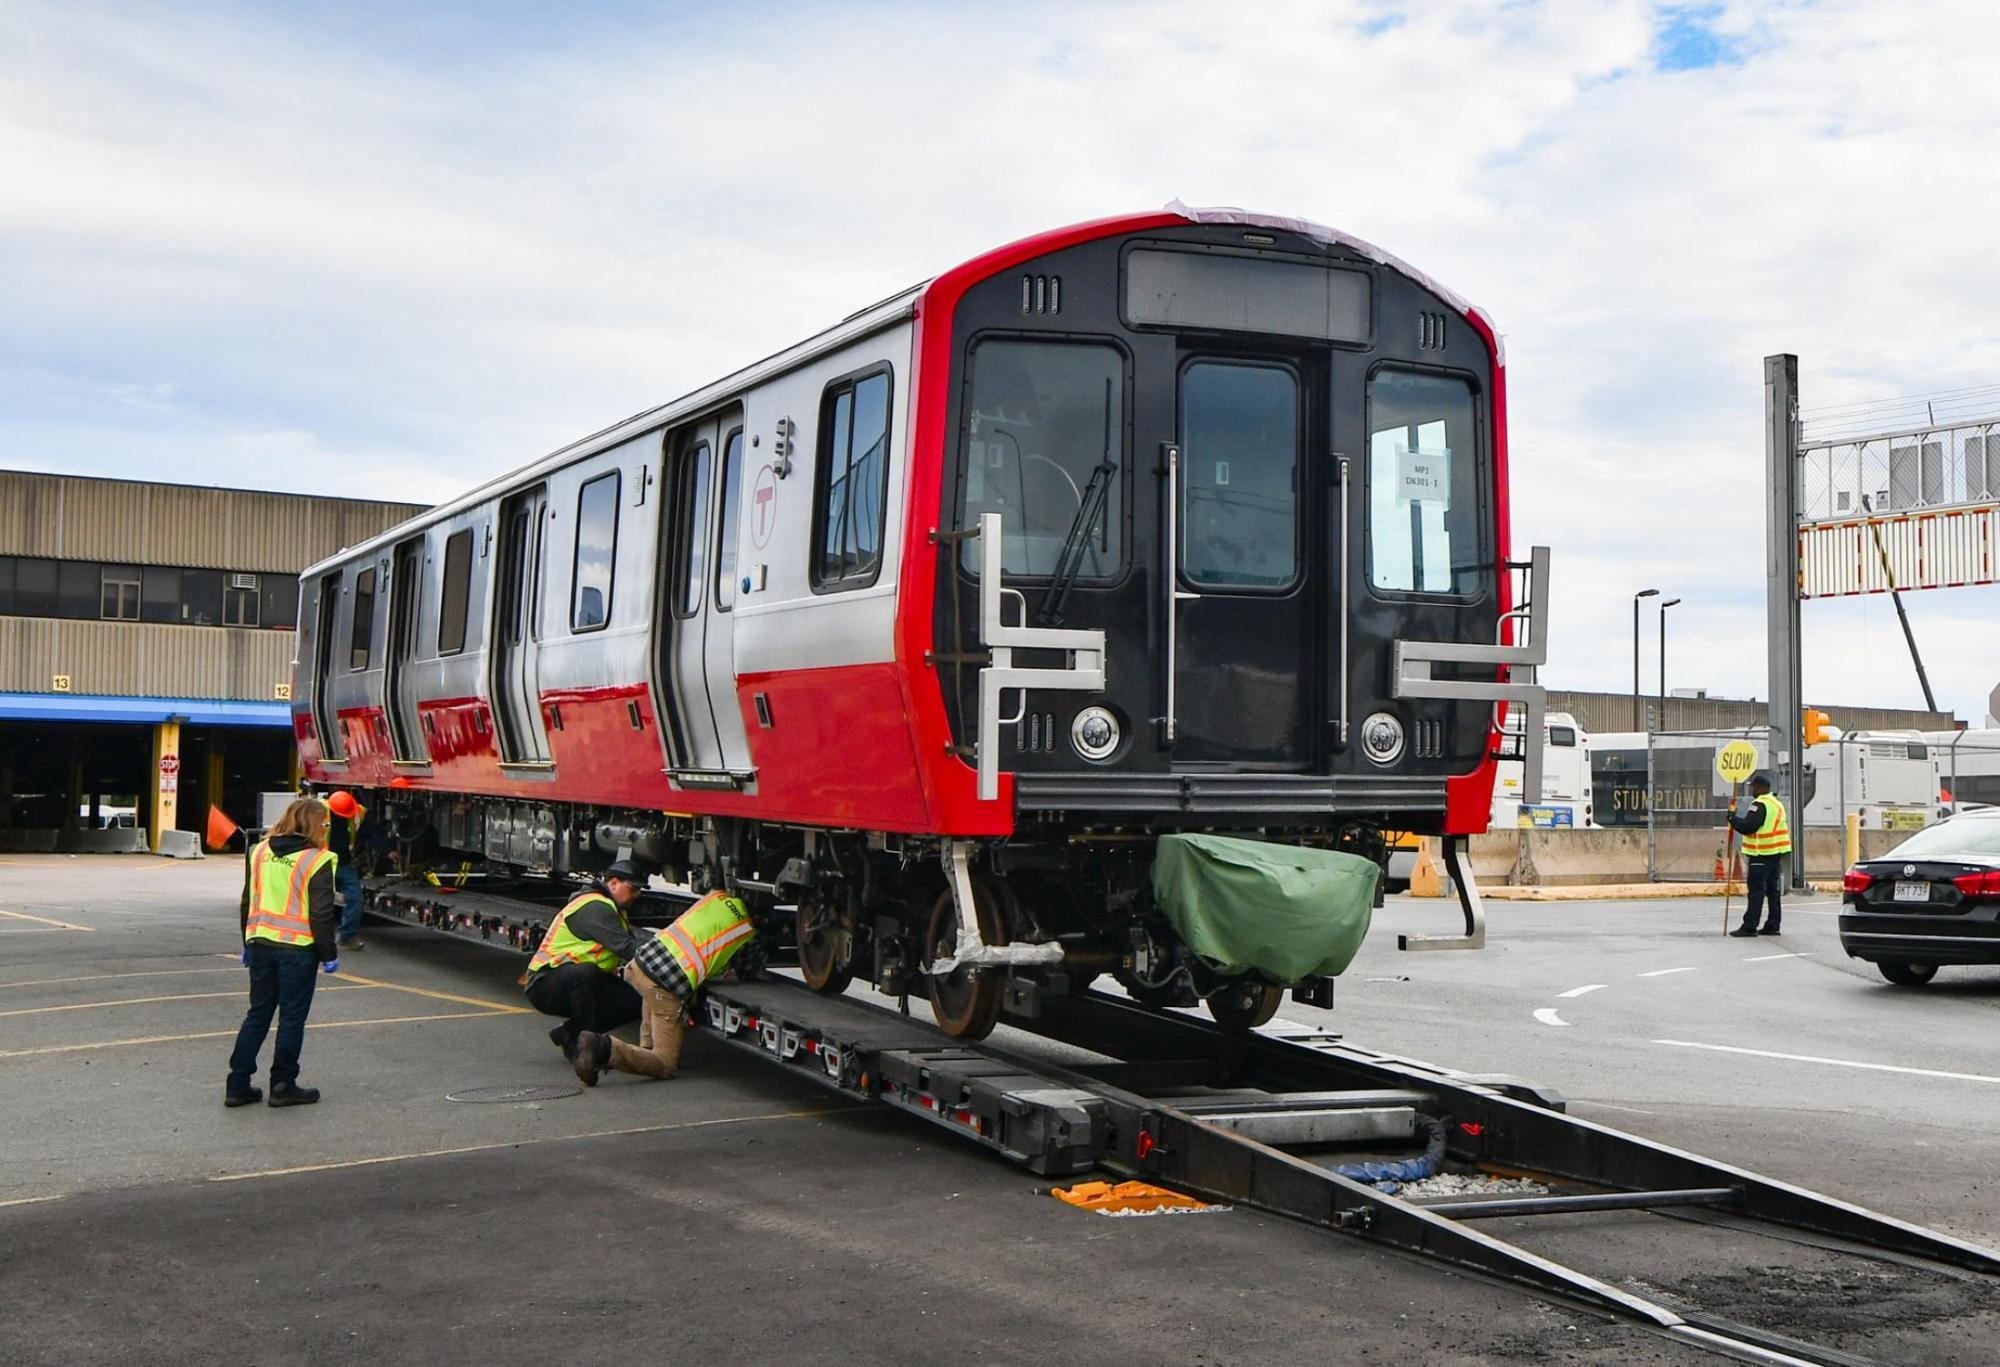 A new Red Line car delievered to Cabot Yard. MBTA workers help get it off the trailer.